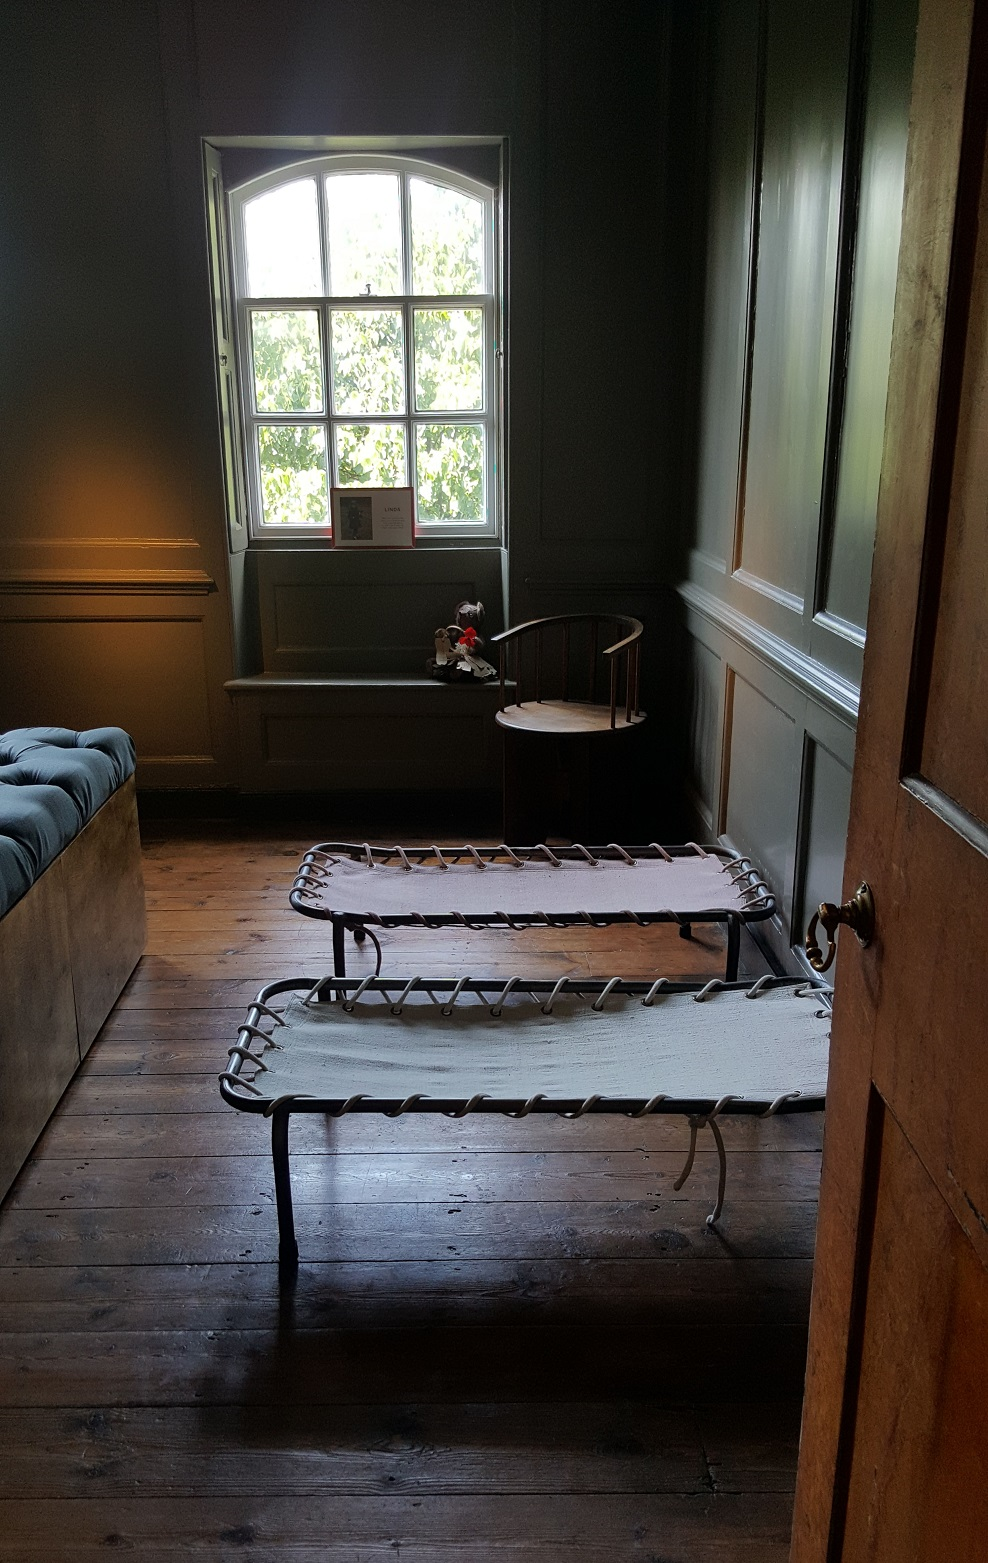 A room in Rainham Hall set up as it would have been in the 1940s Day Nursery for children to nap – Copyright with the author